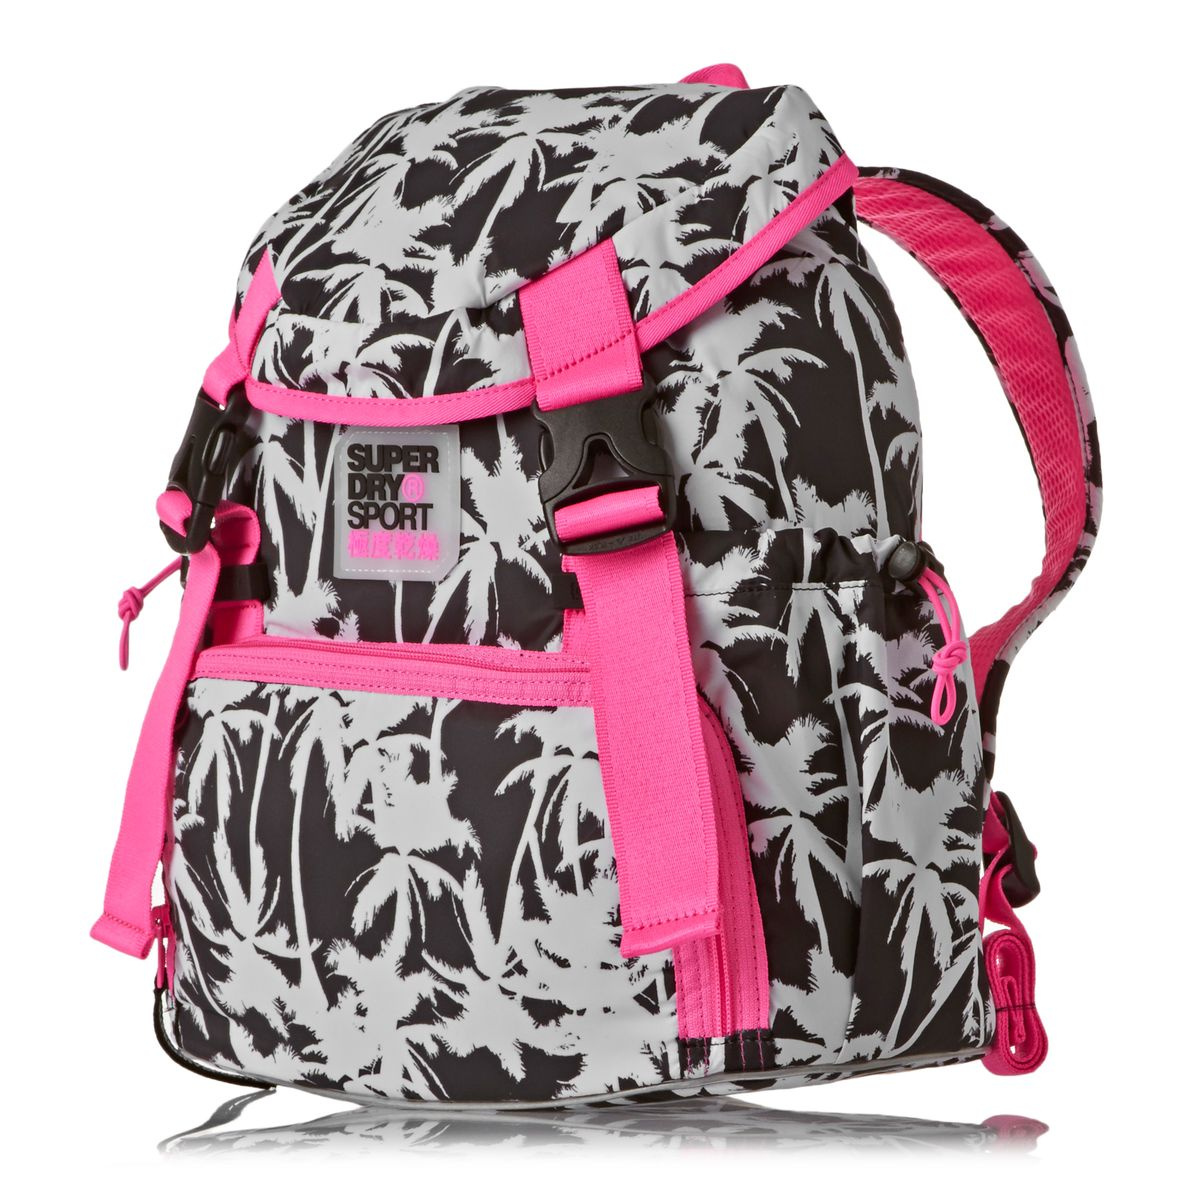 superdry-backpacks-superdry-super-sport-backpack-mono-palm